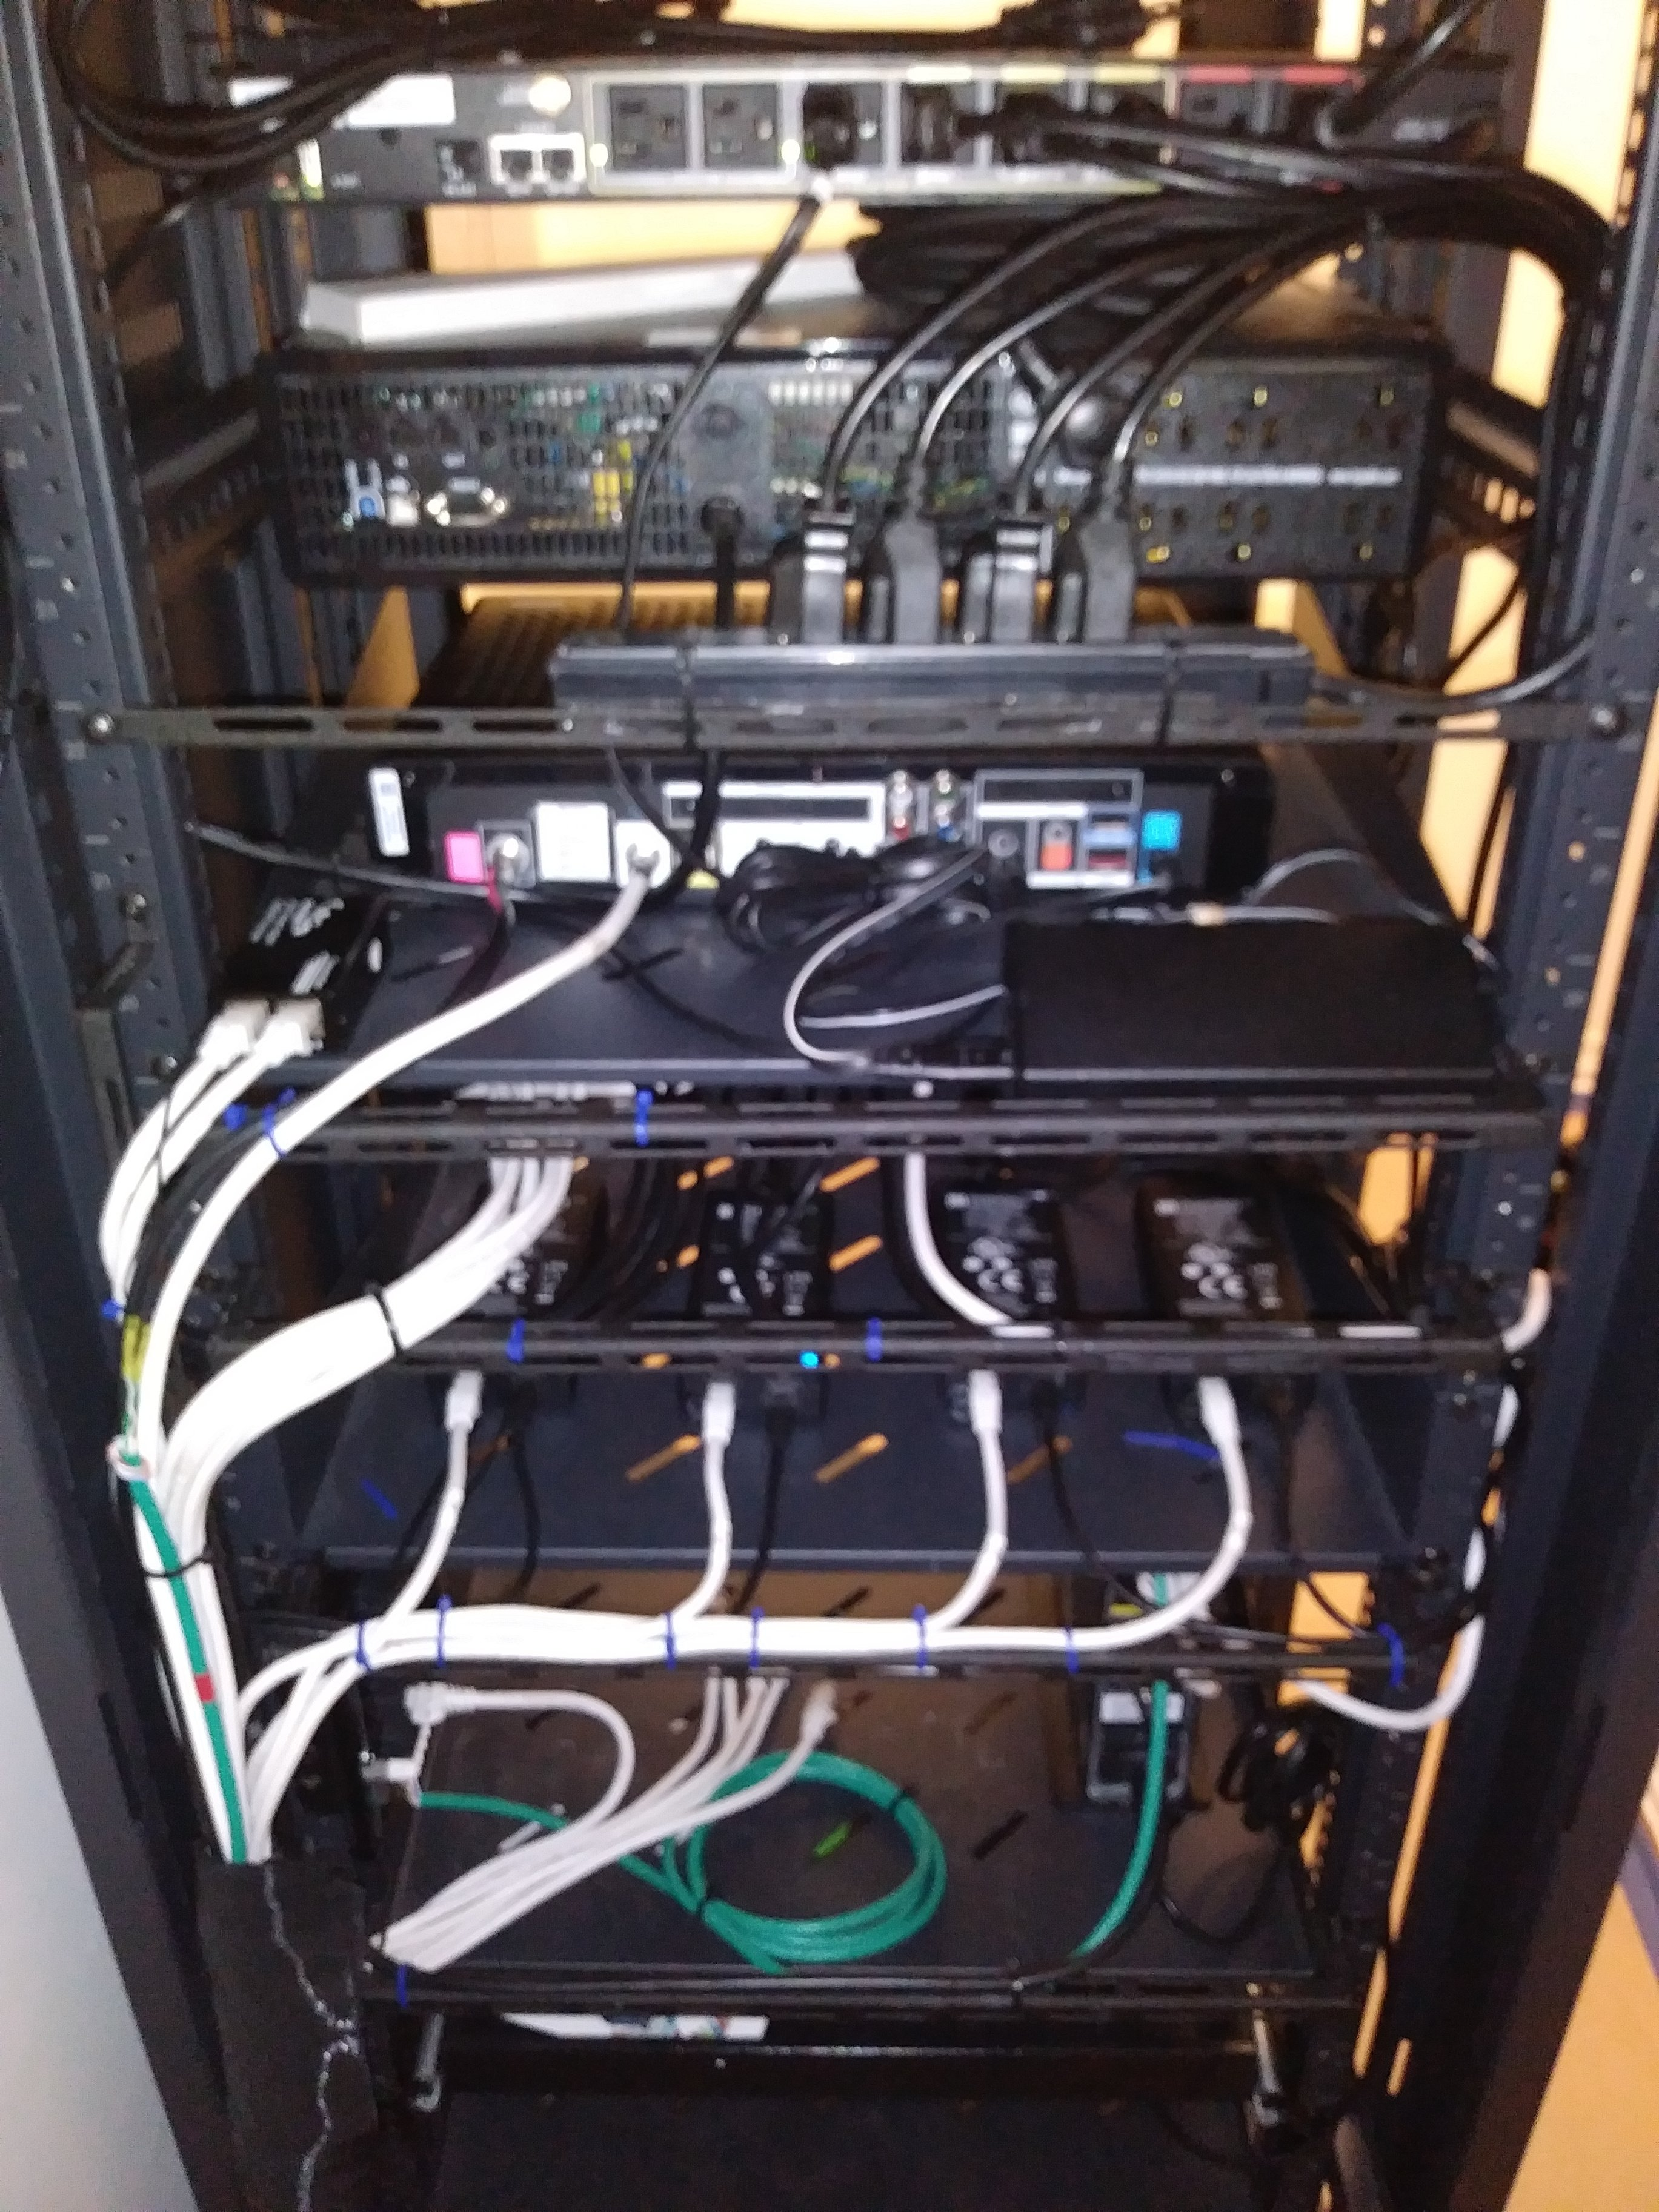 Centralized equipment in a rack.